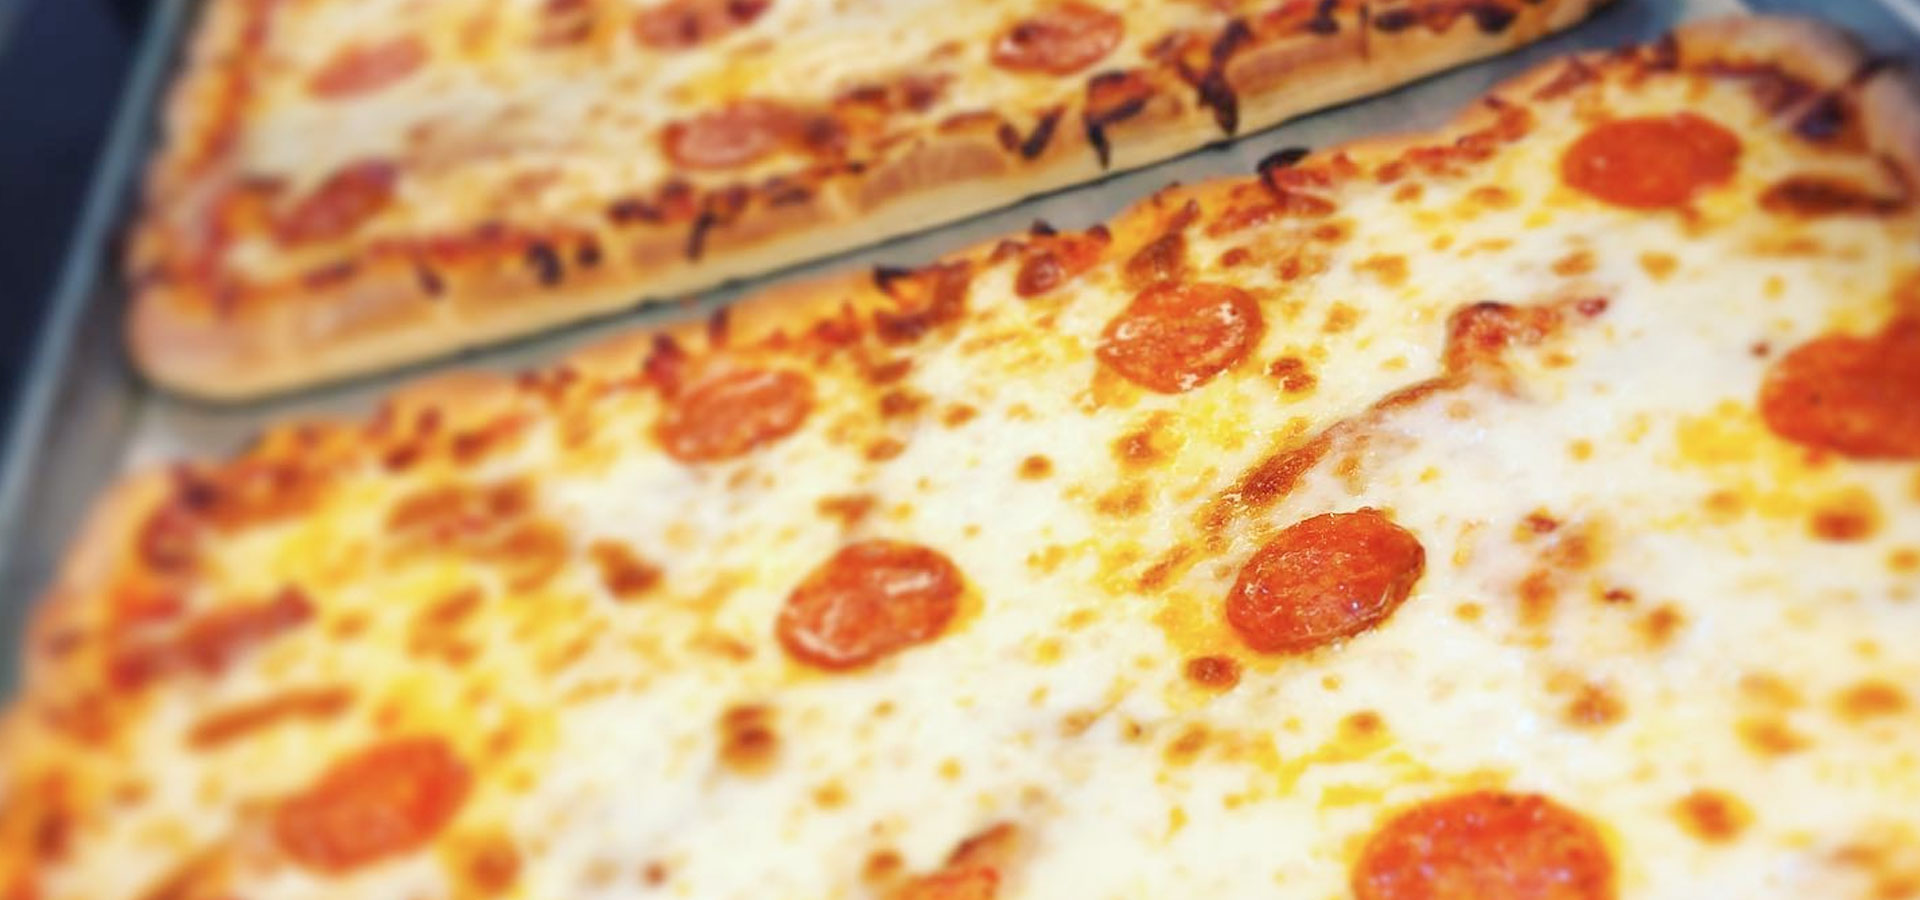 Tony's Famous Pepperoni Pizza fresh out of the oven